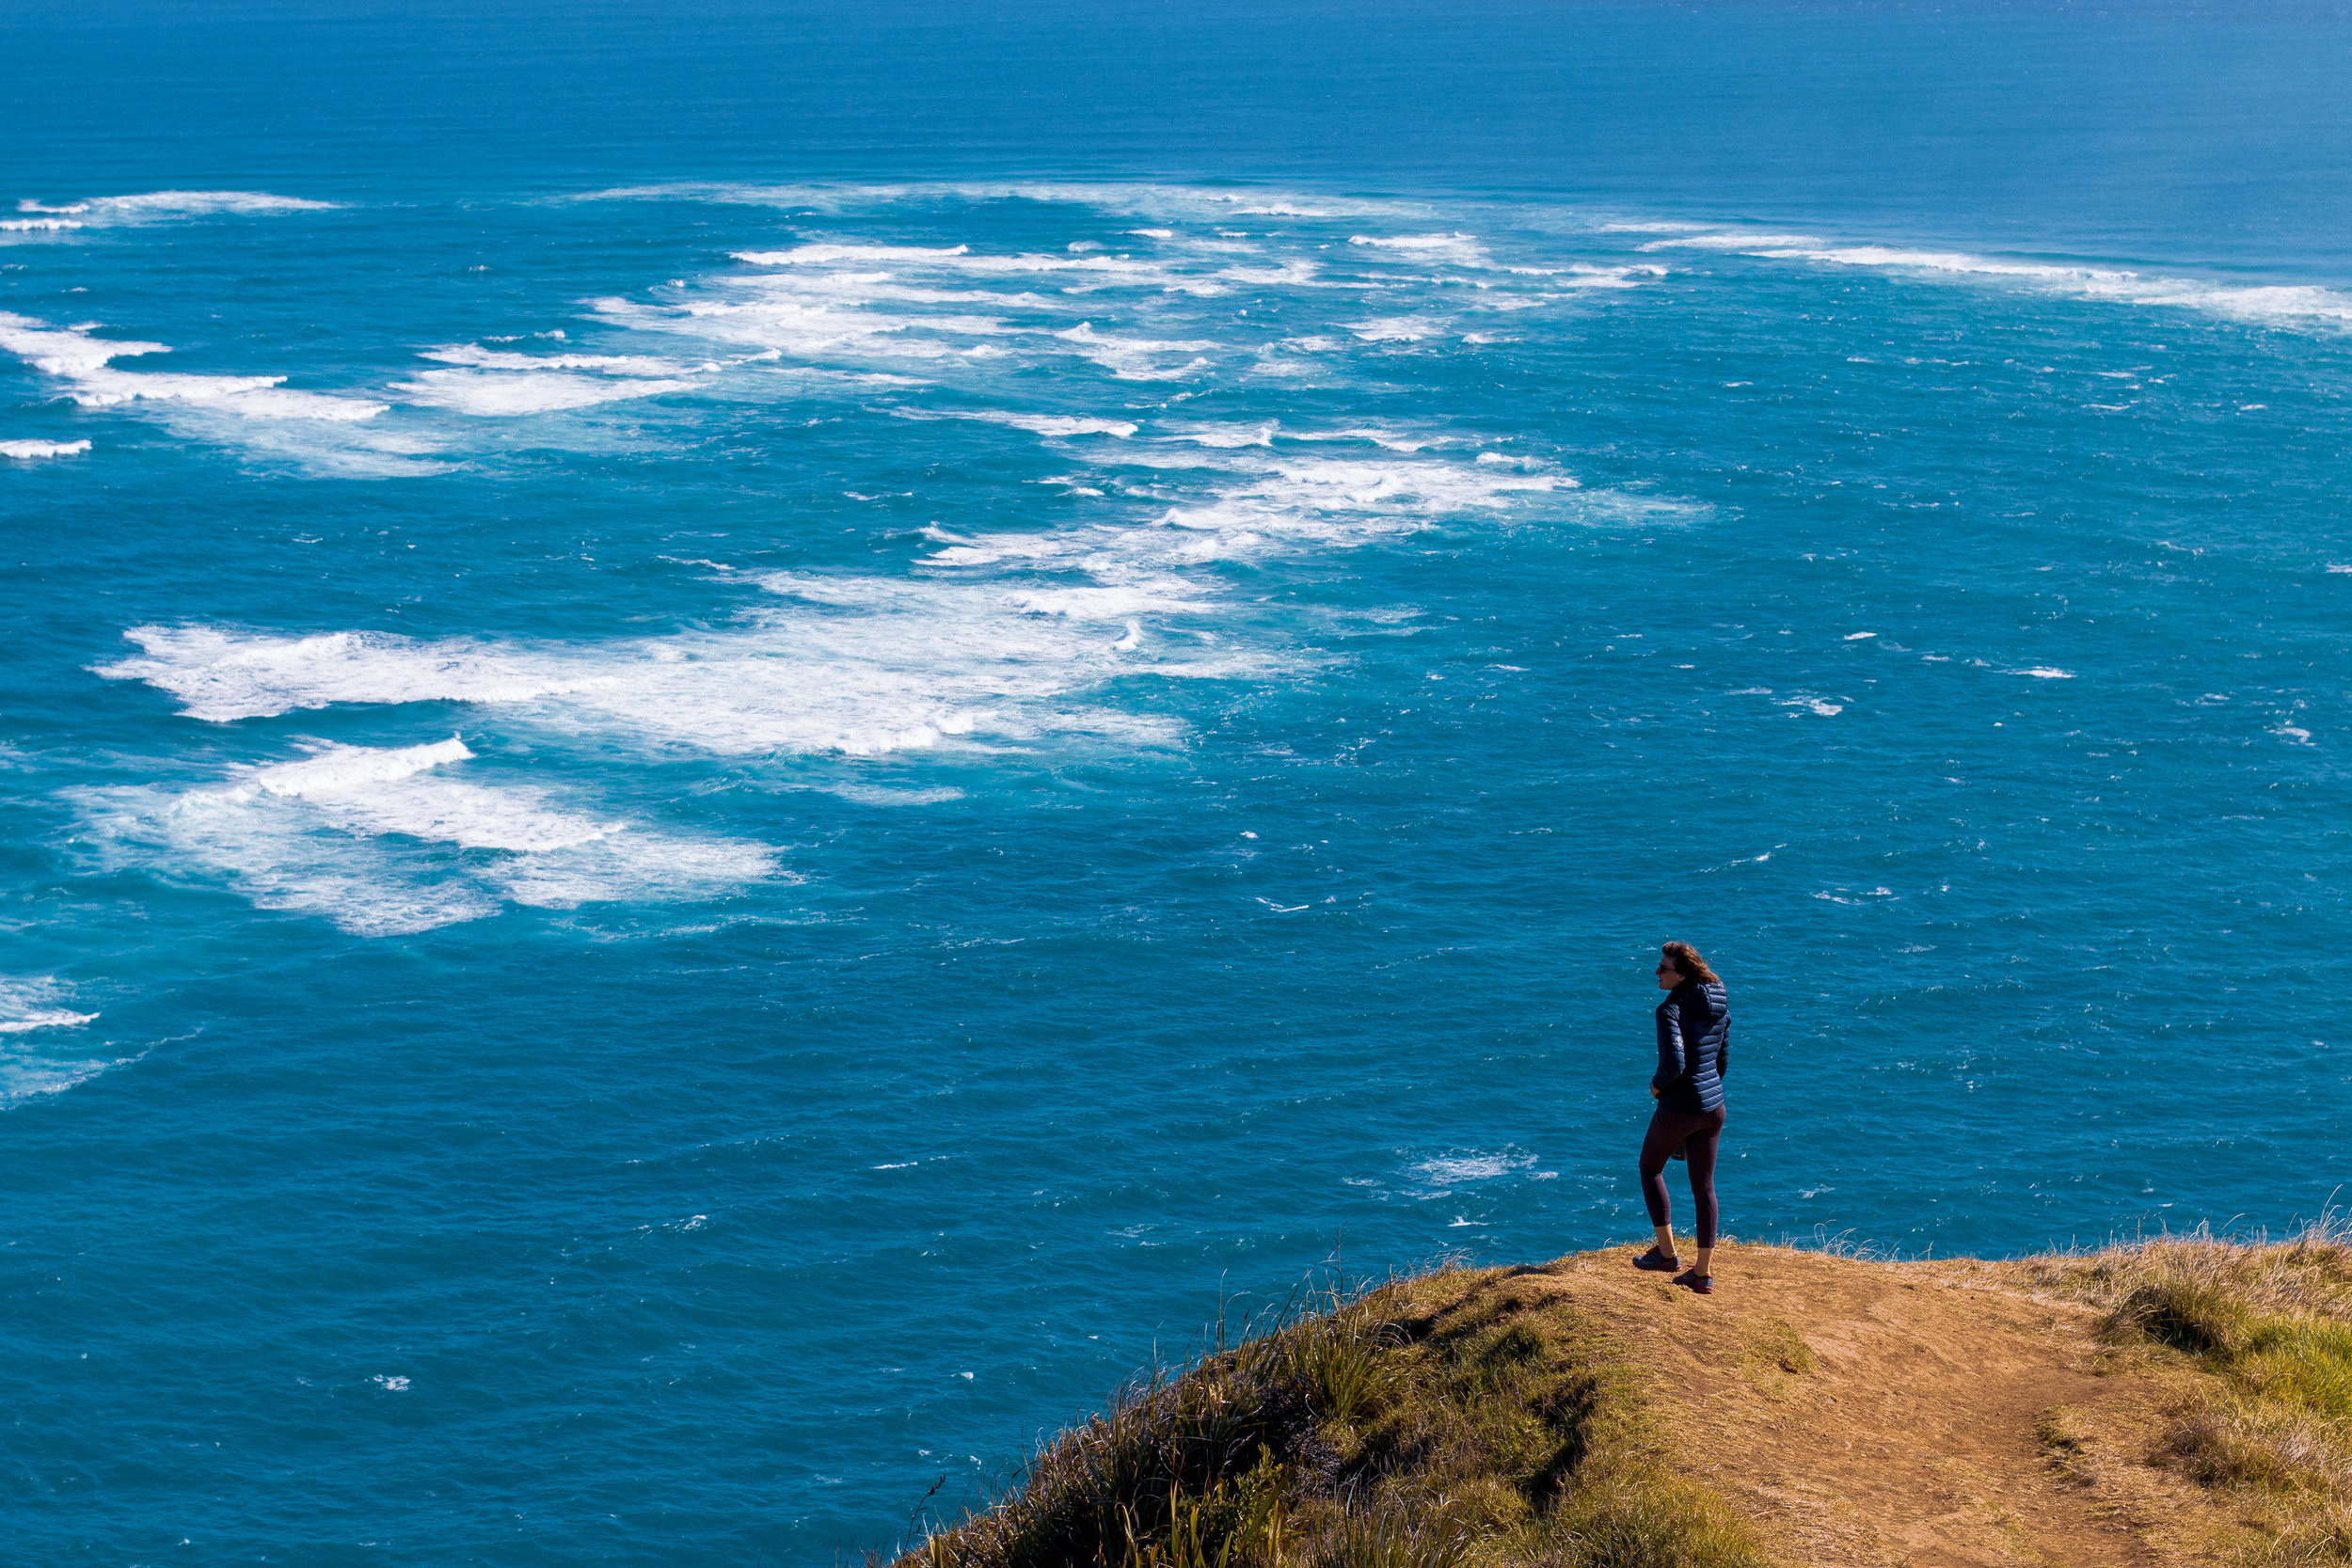 This is where the tasman sea and pacific ocean meet. No wonder the place pumps.